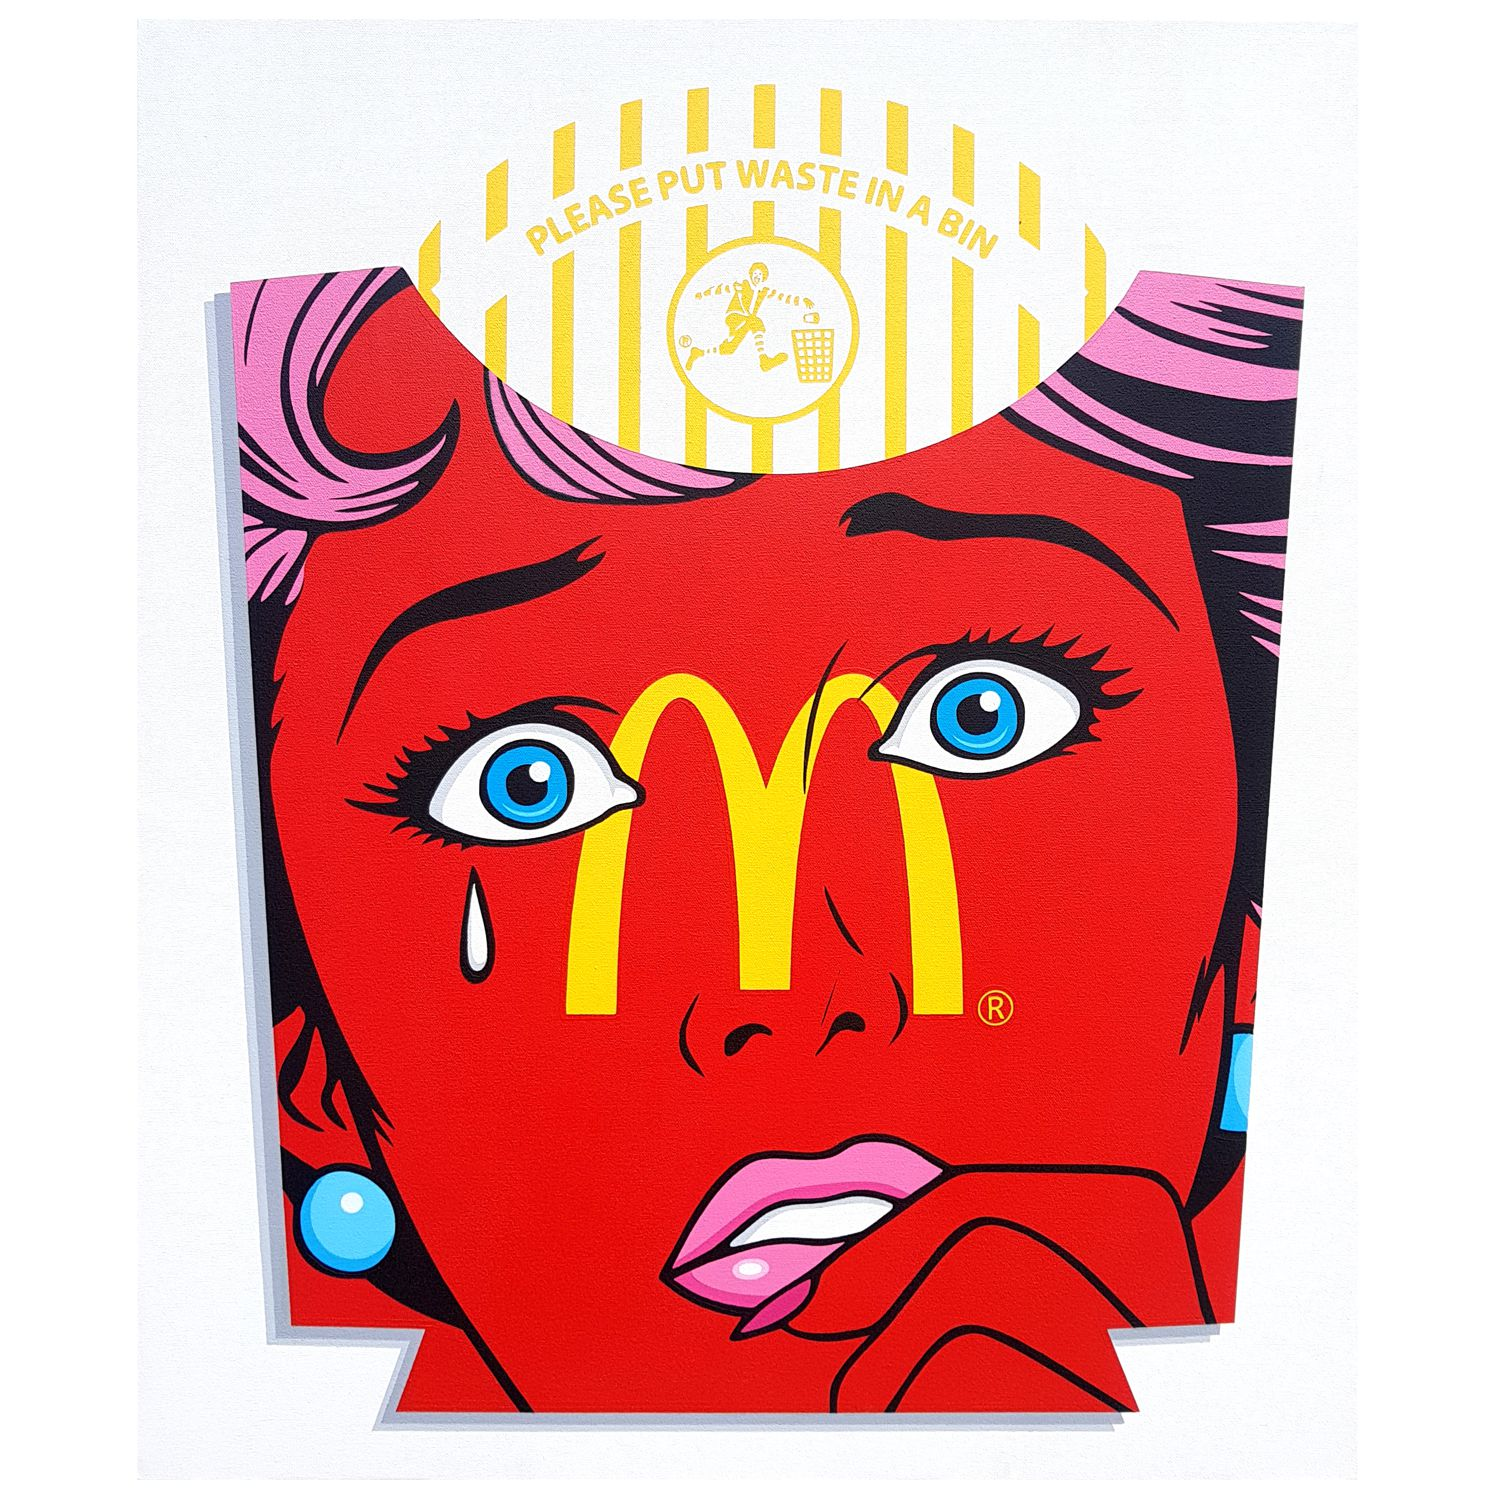 It's Mac Time - Acrylic on canvas - 28 x 34inches - 2018